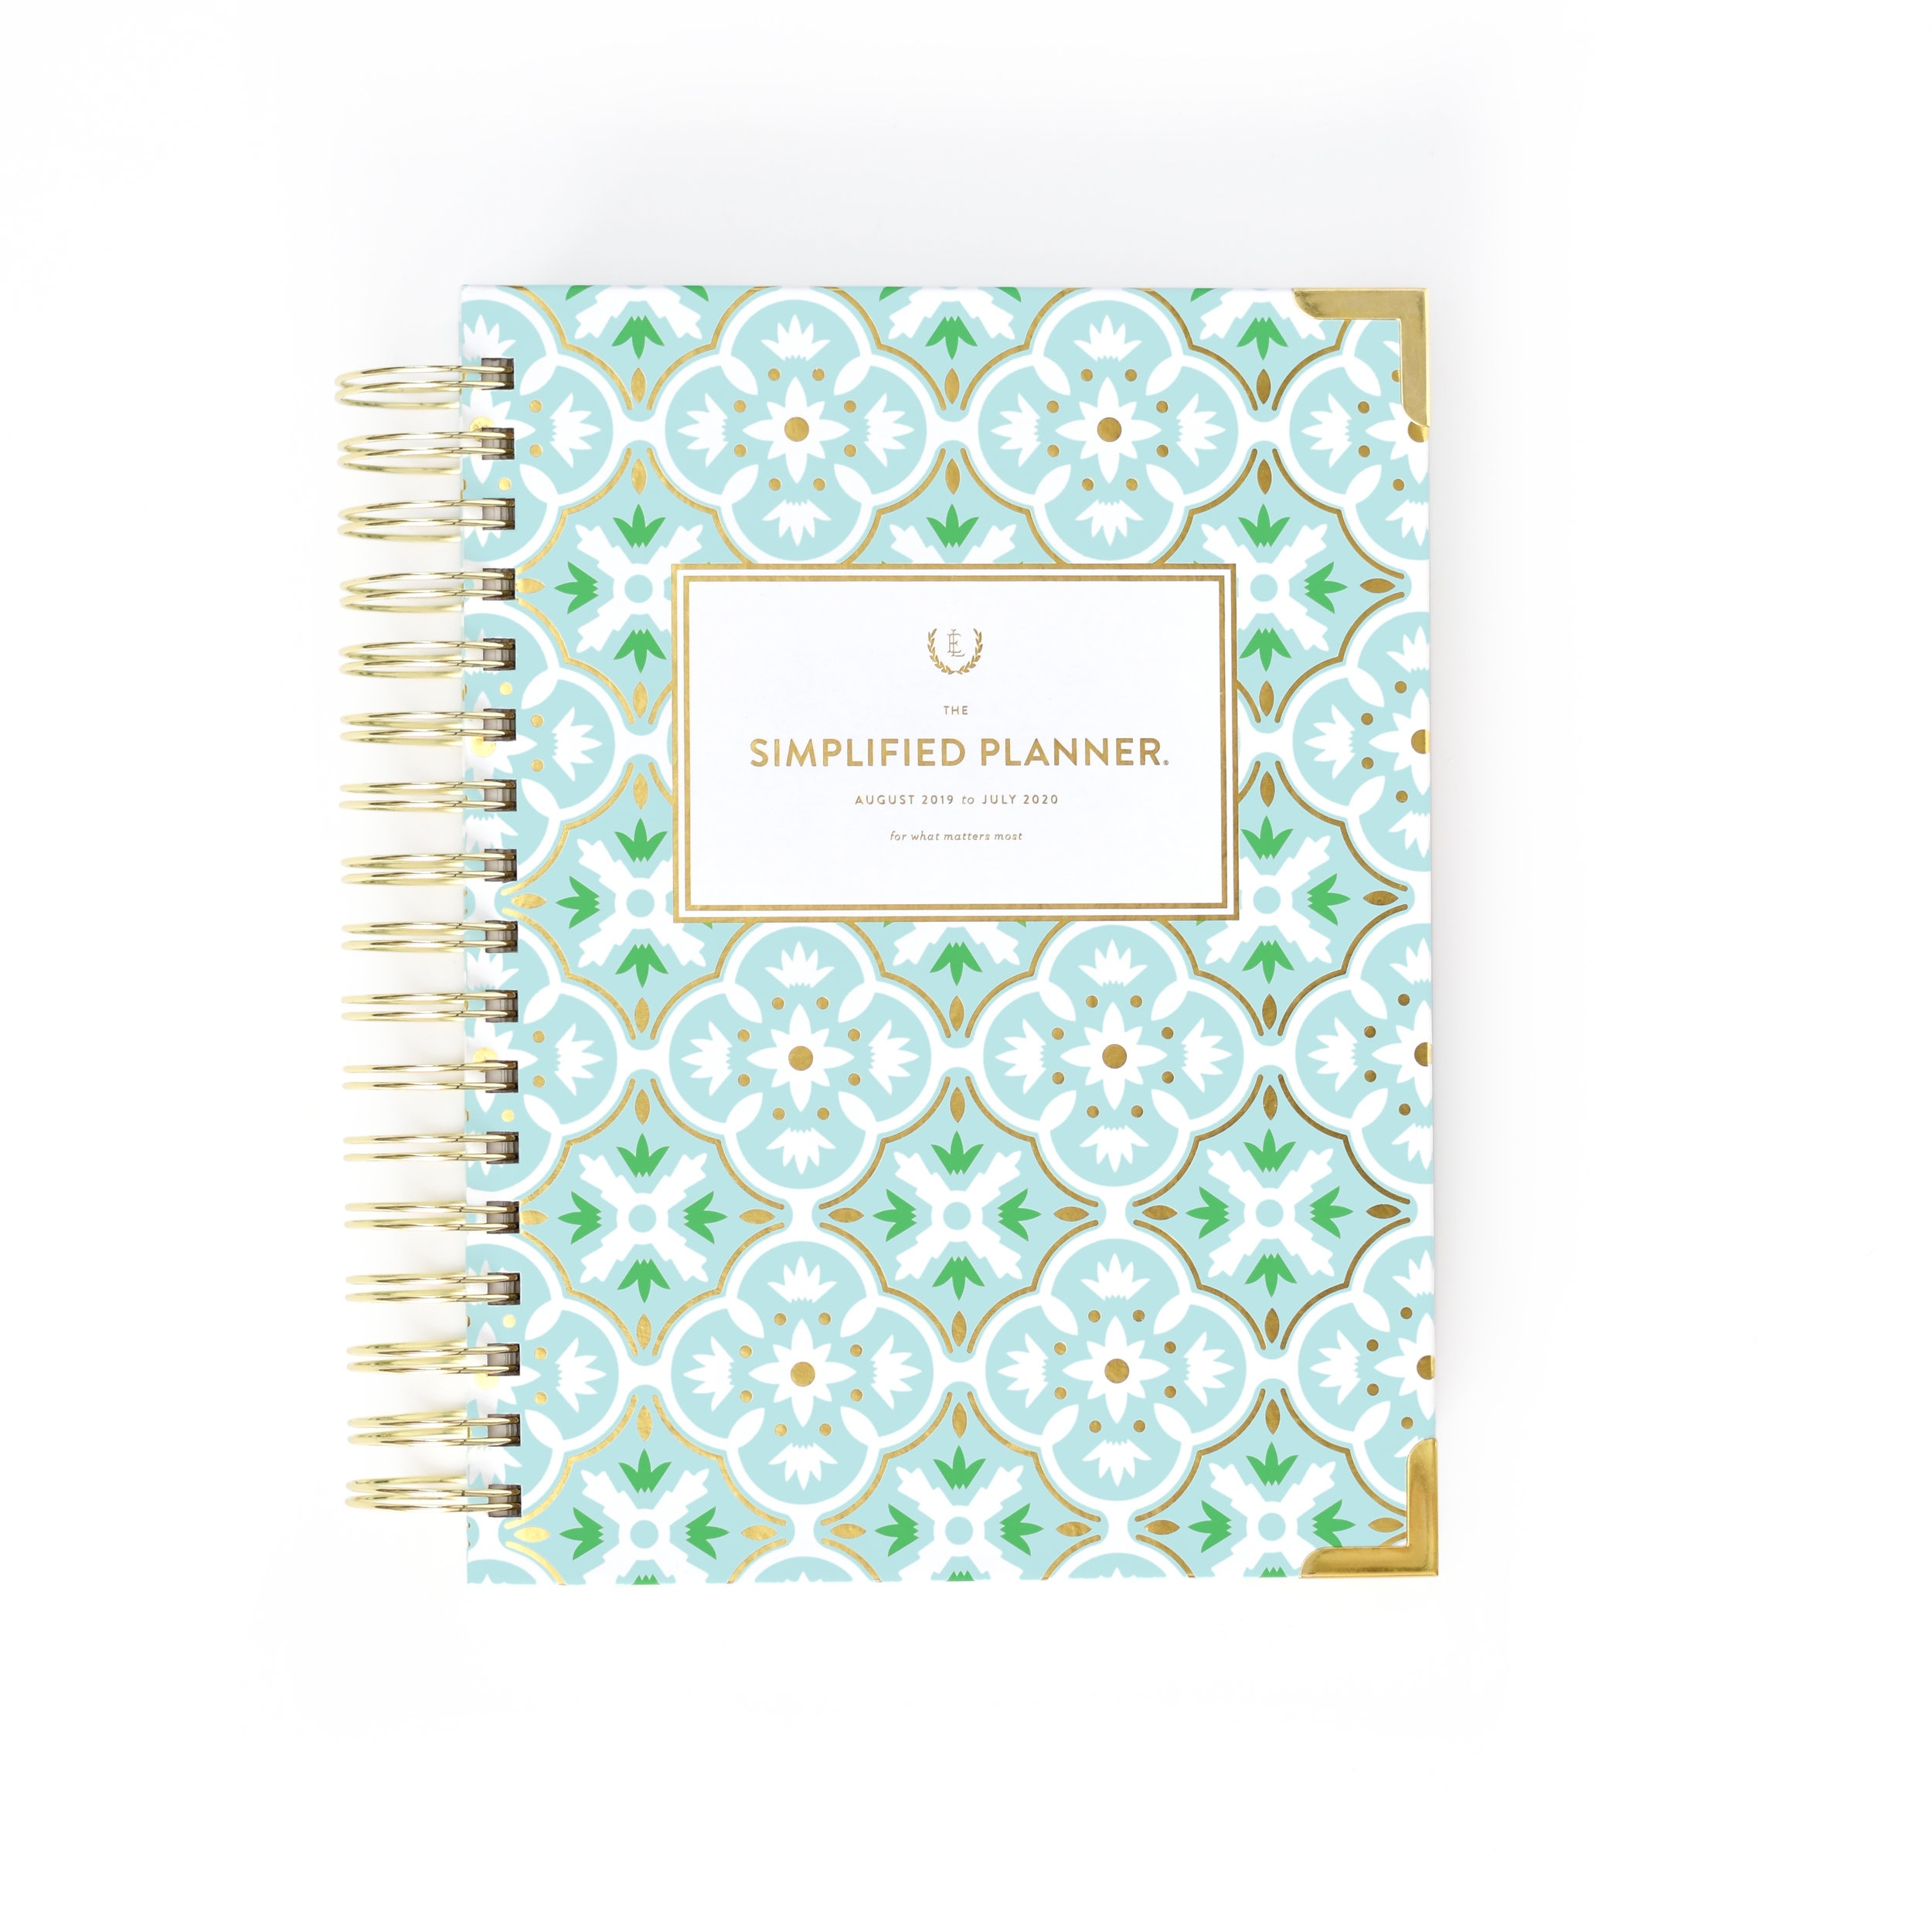 Mint Tile Daily Simplified Planner | $58 -